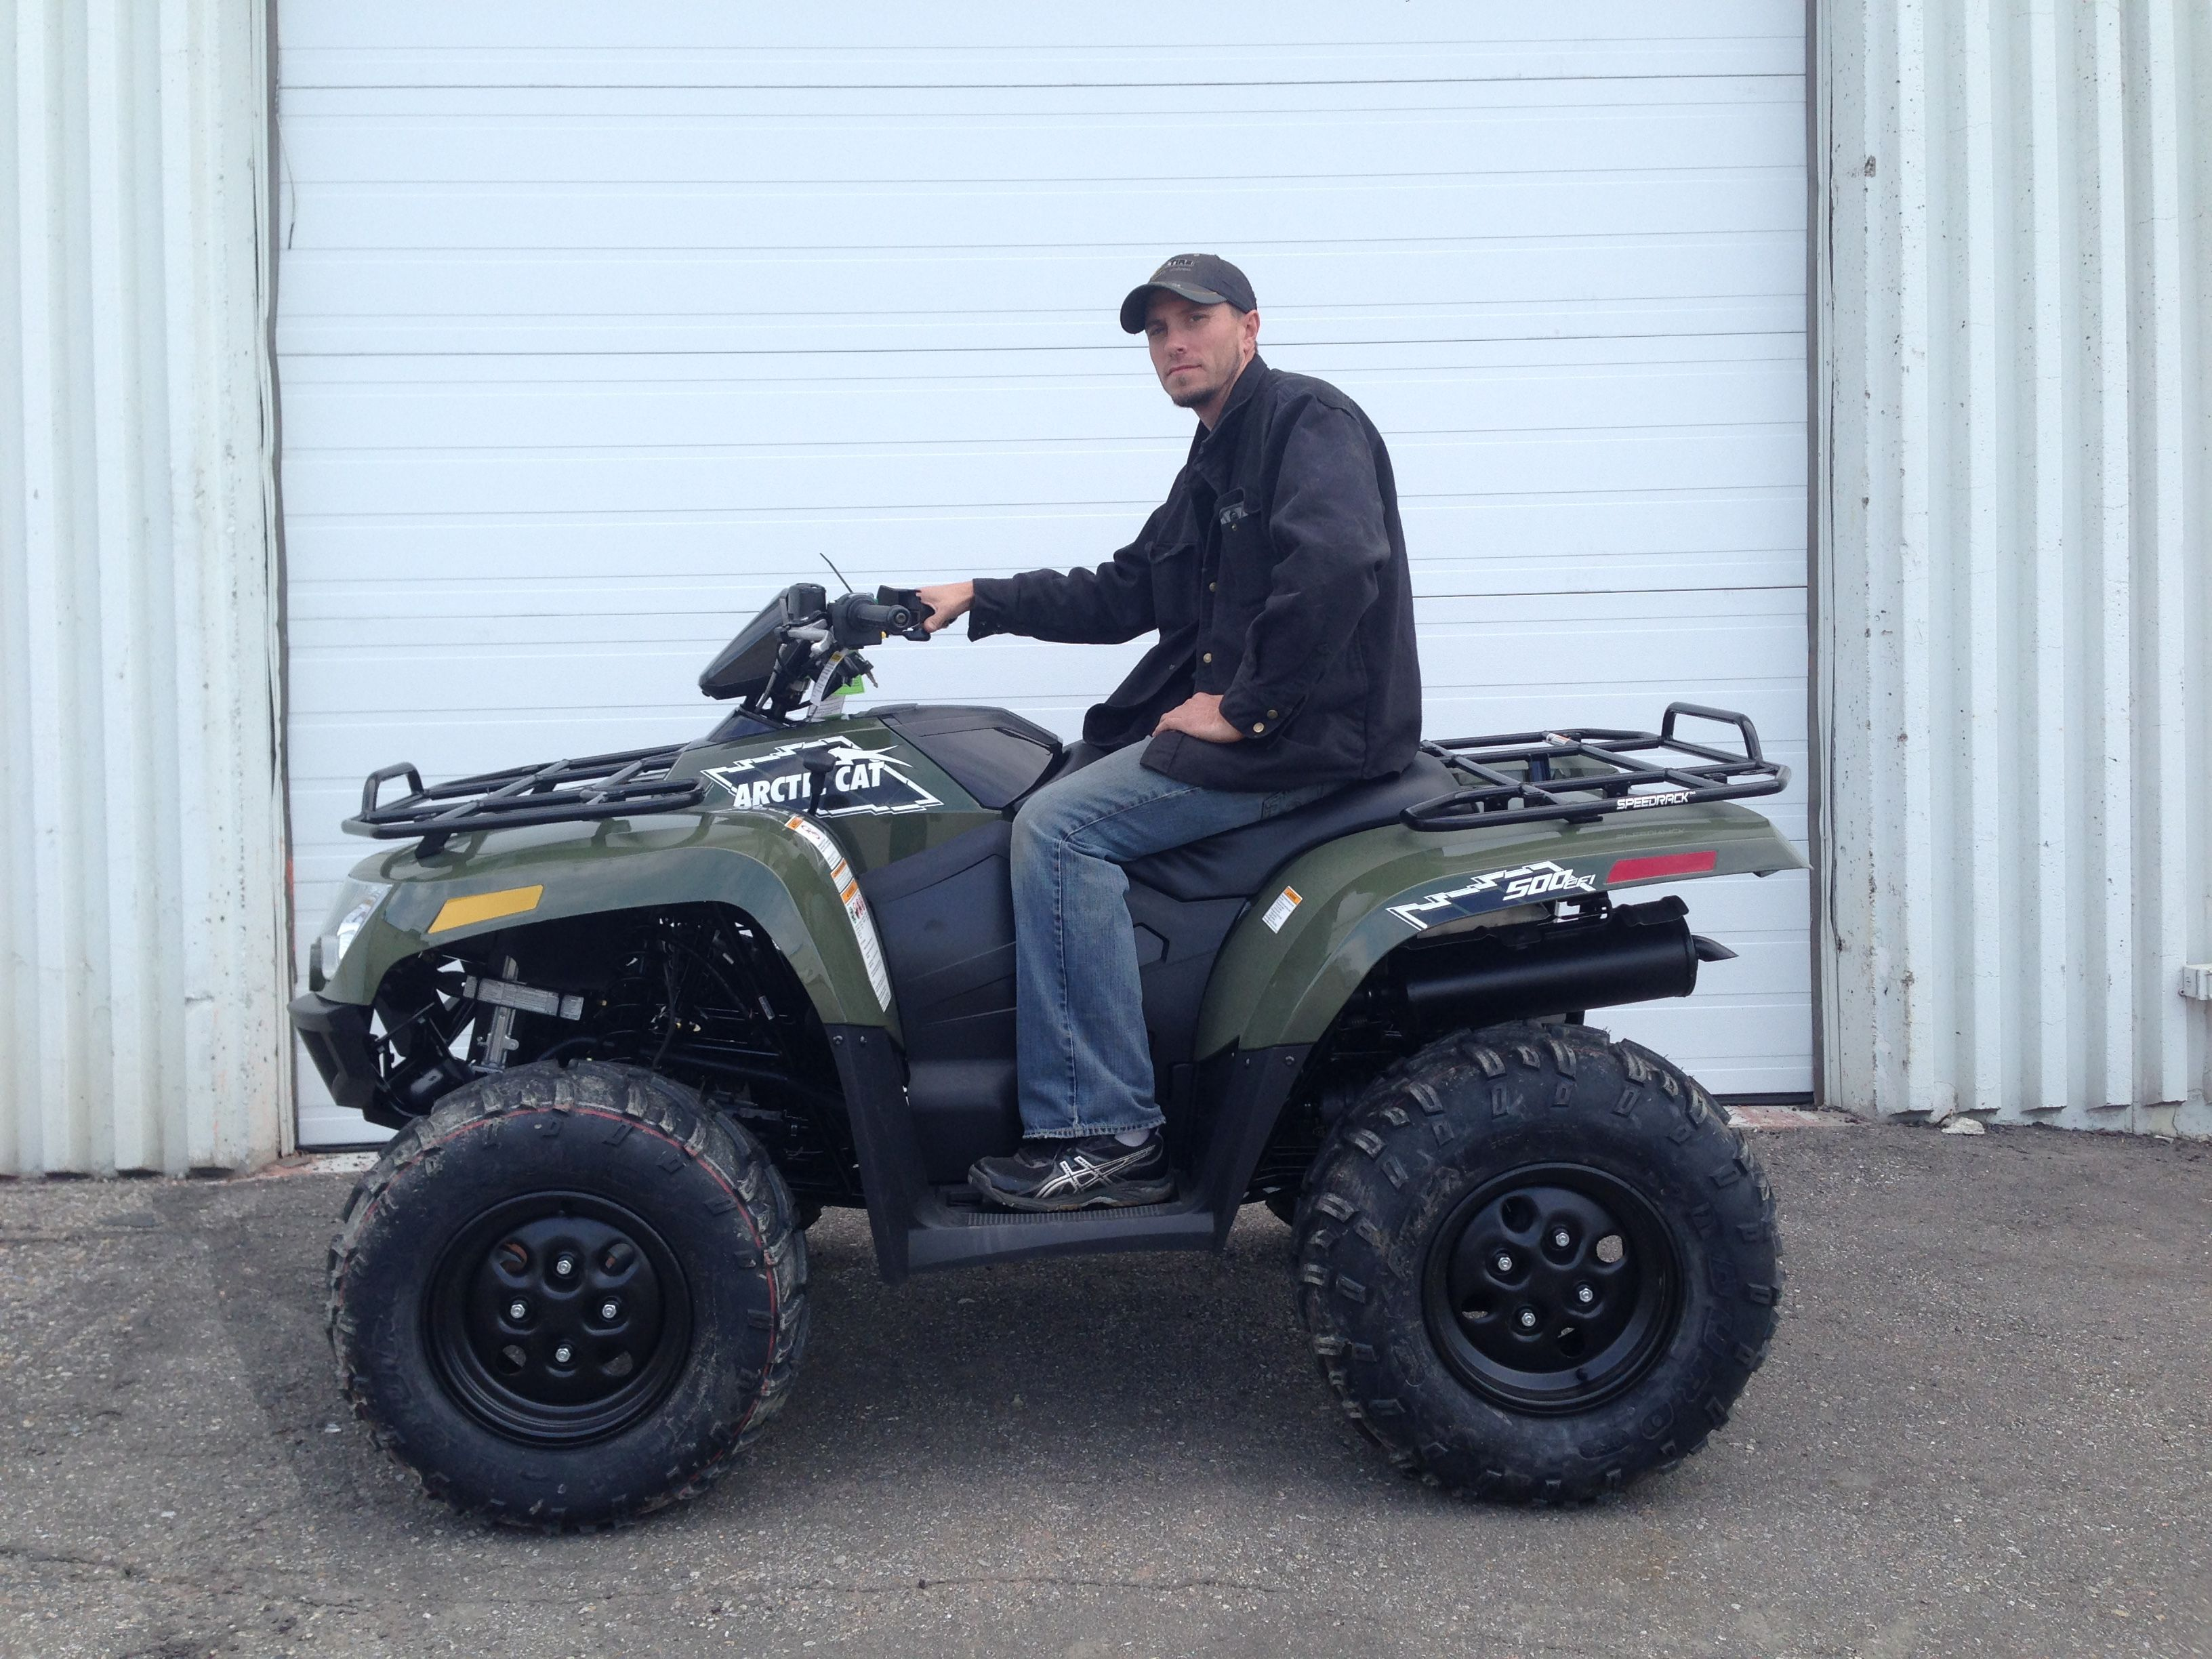 Arthur bring home a 2015 Arctic Cat 500 from Ralph's